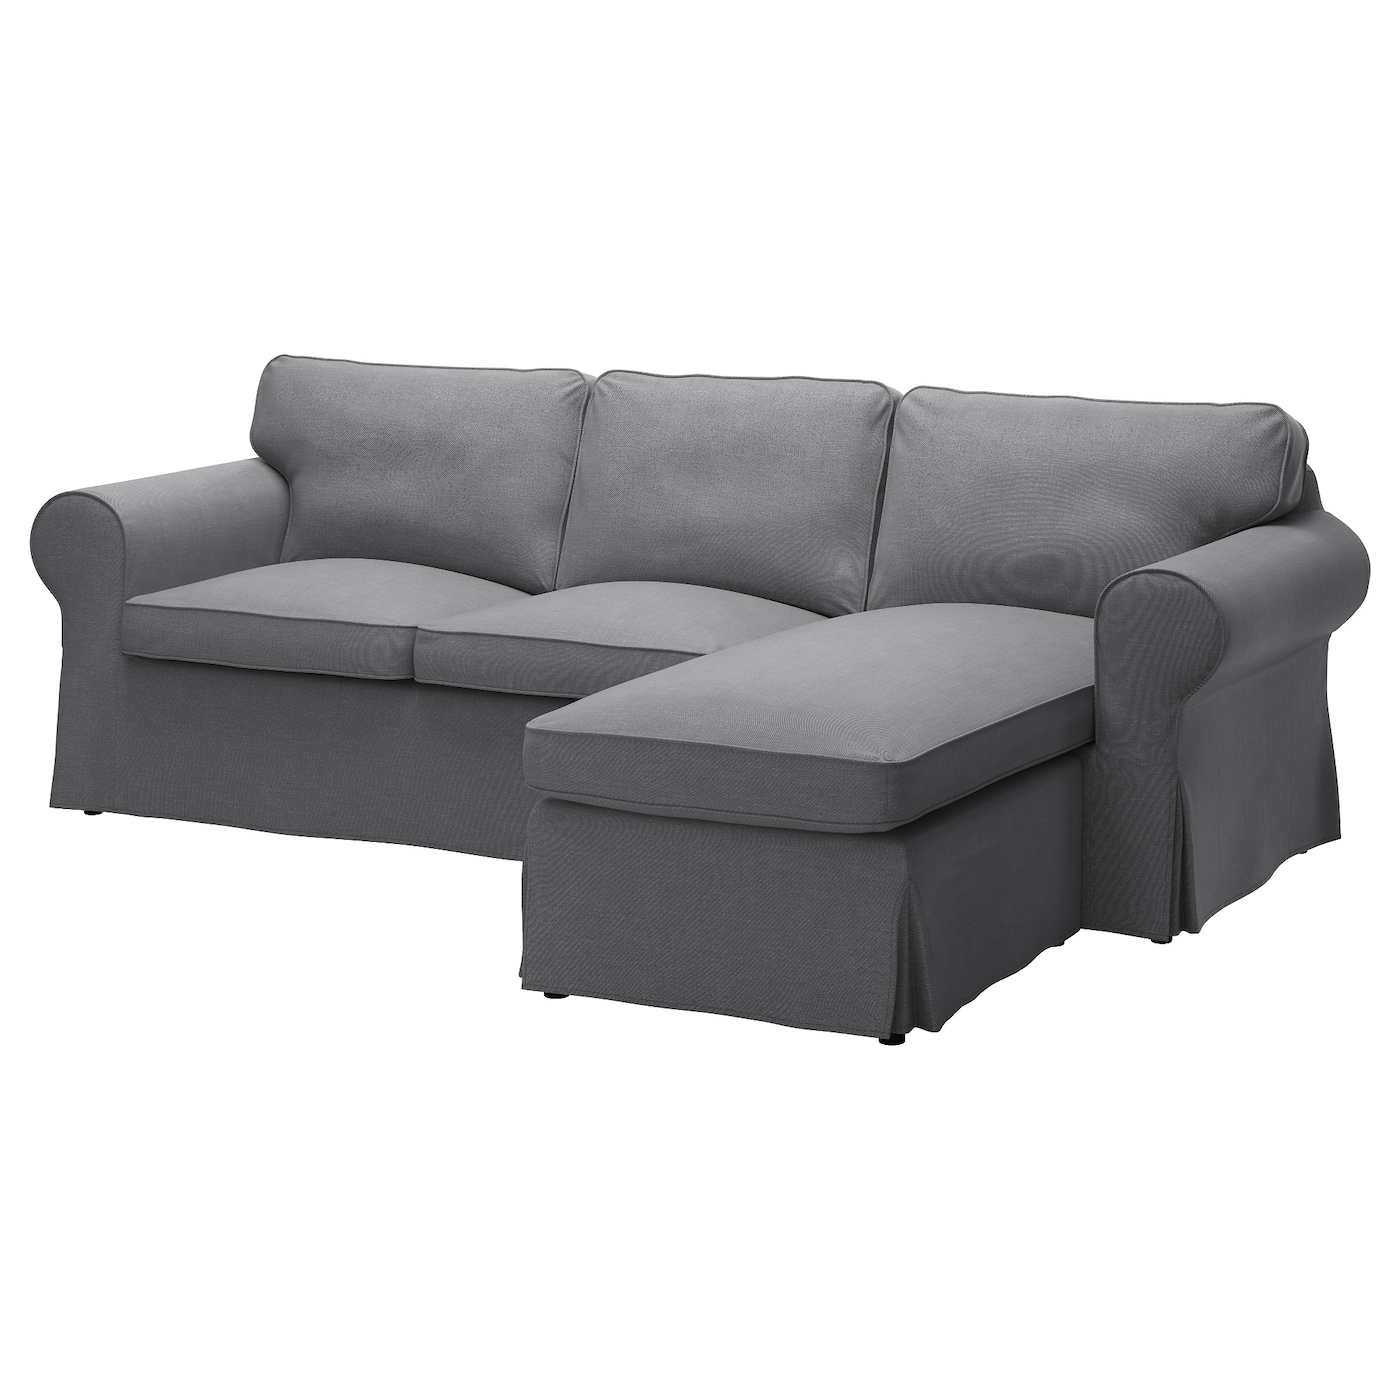 Ektorp 3 seat sofa with chaise longue nordvalla dark grey - Cubre sofas chaise longue ...